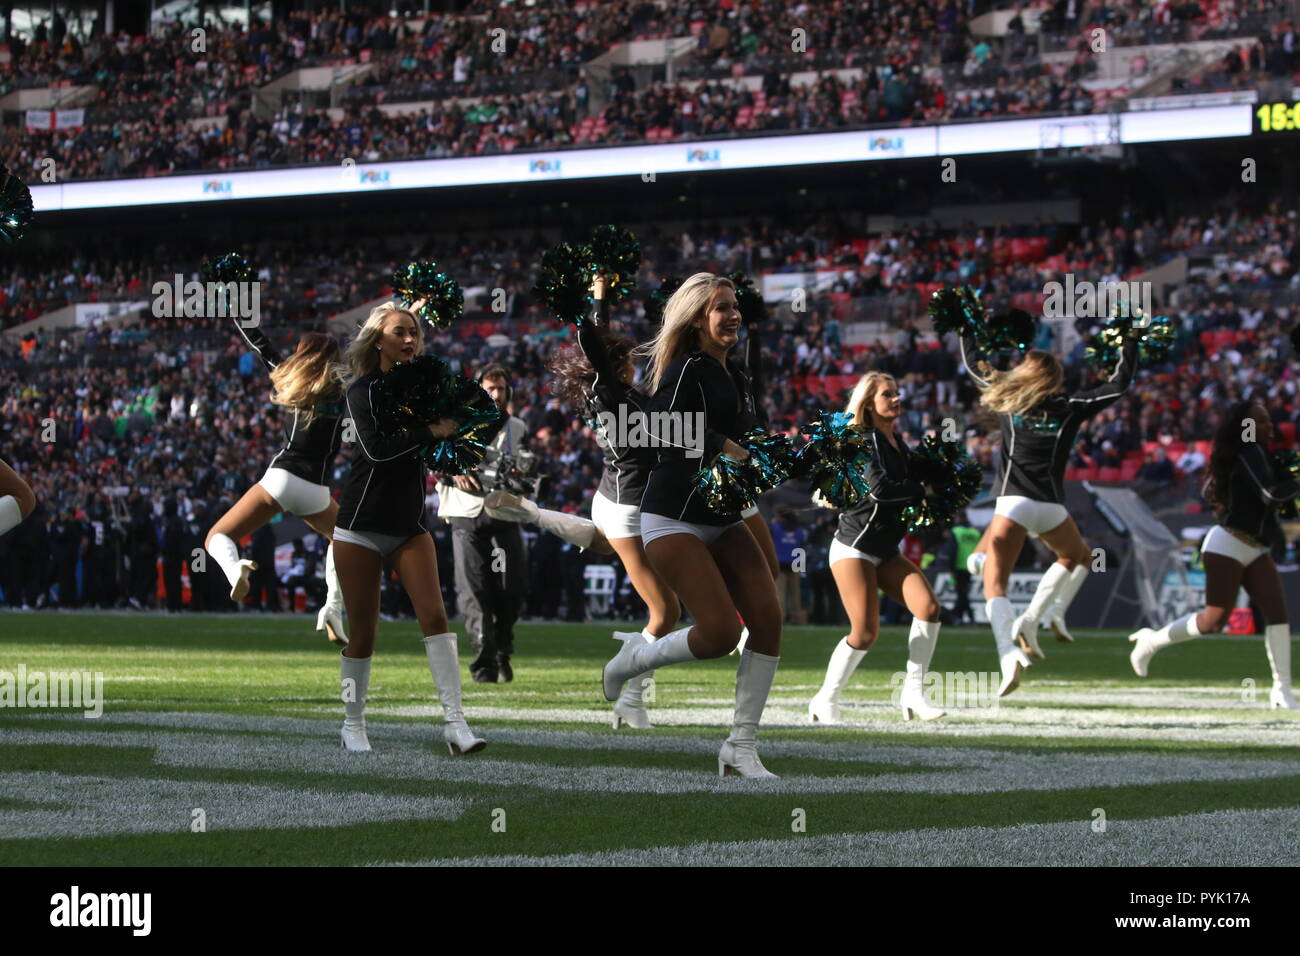 London, UK. 28 October 2018.  Jaguars Cheerleaders,  at the Eagles at Jaguars - credit Glamourstock Credit: glamourstock/Alamy Live News - Stock Image